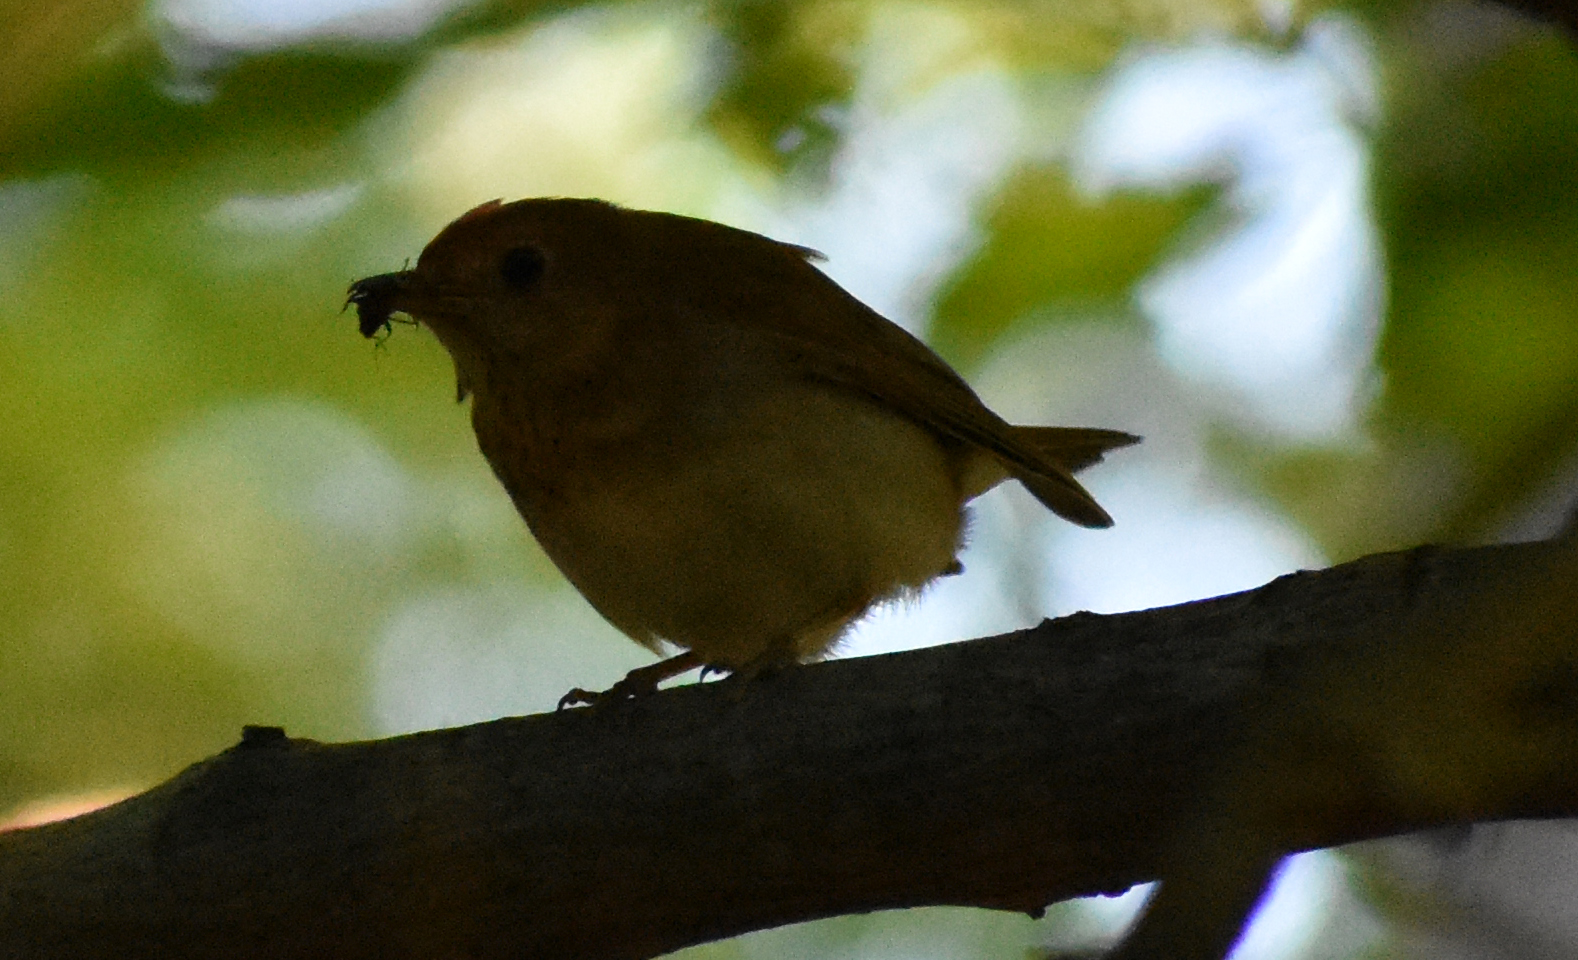 Veery eating an insect